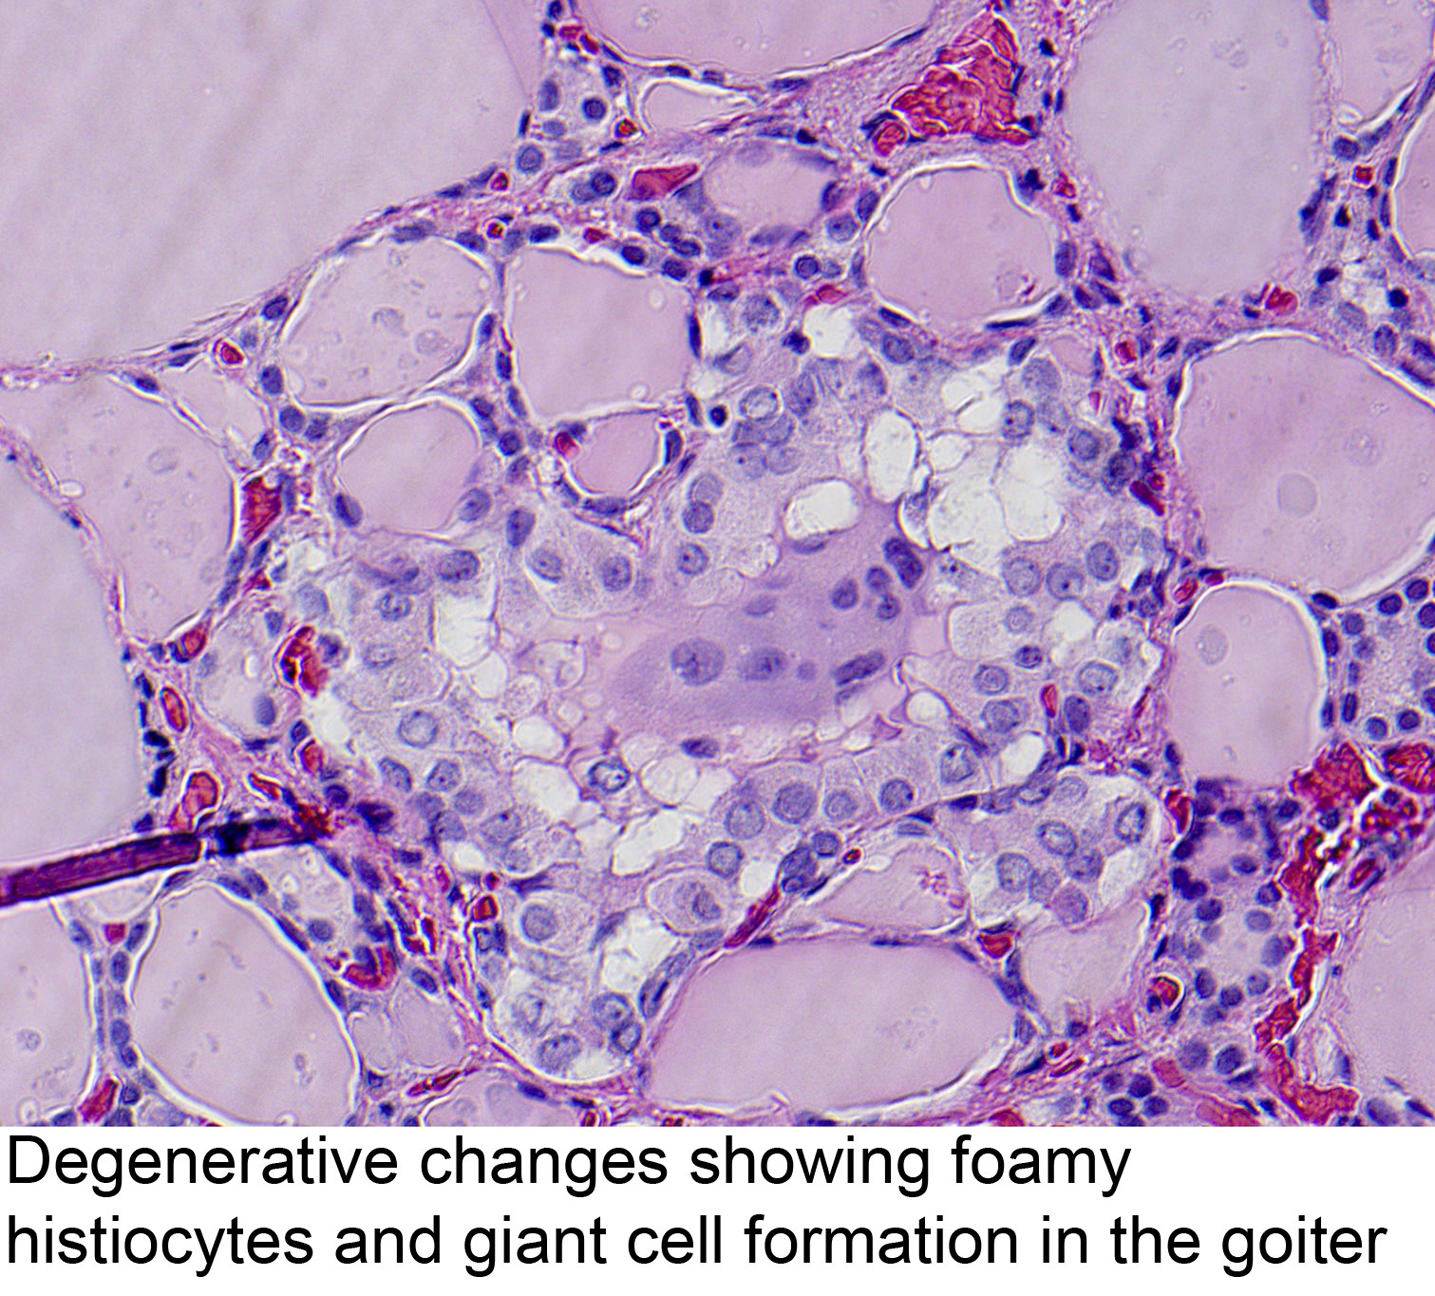 pathology outlines simple goiter and nontoxic